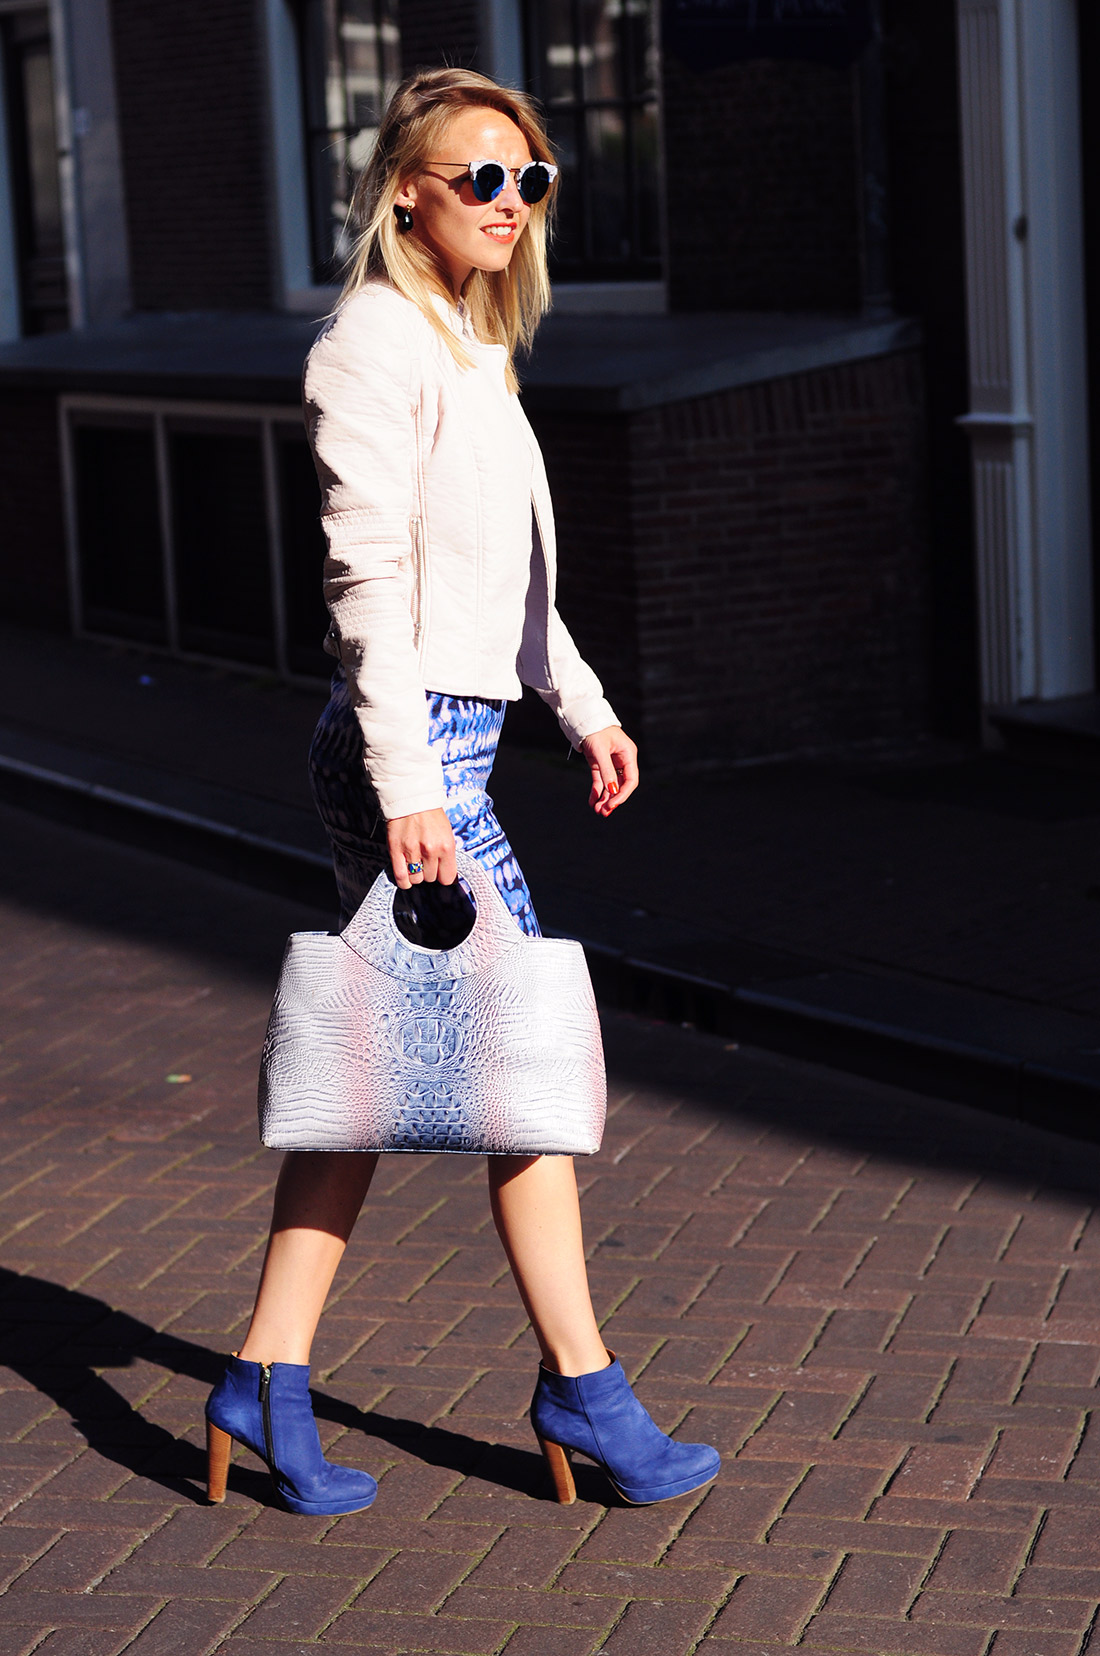 Bag-at-You---Fashion-blog---Polette-sunglasses---Pink-and-blue-dress-and-handbag